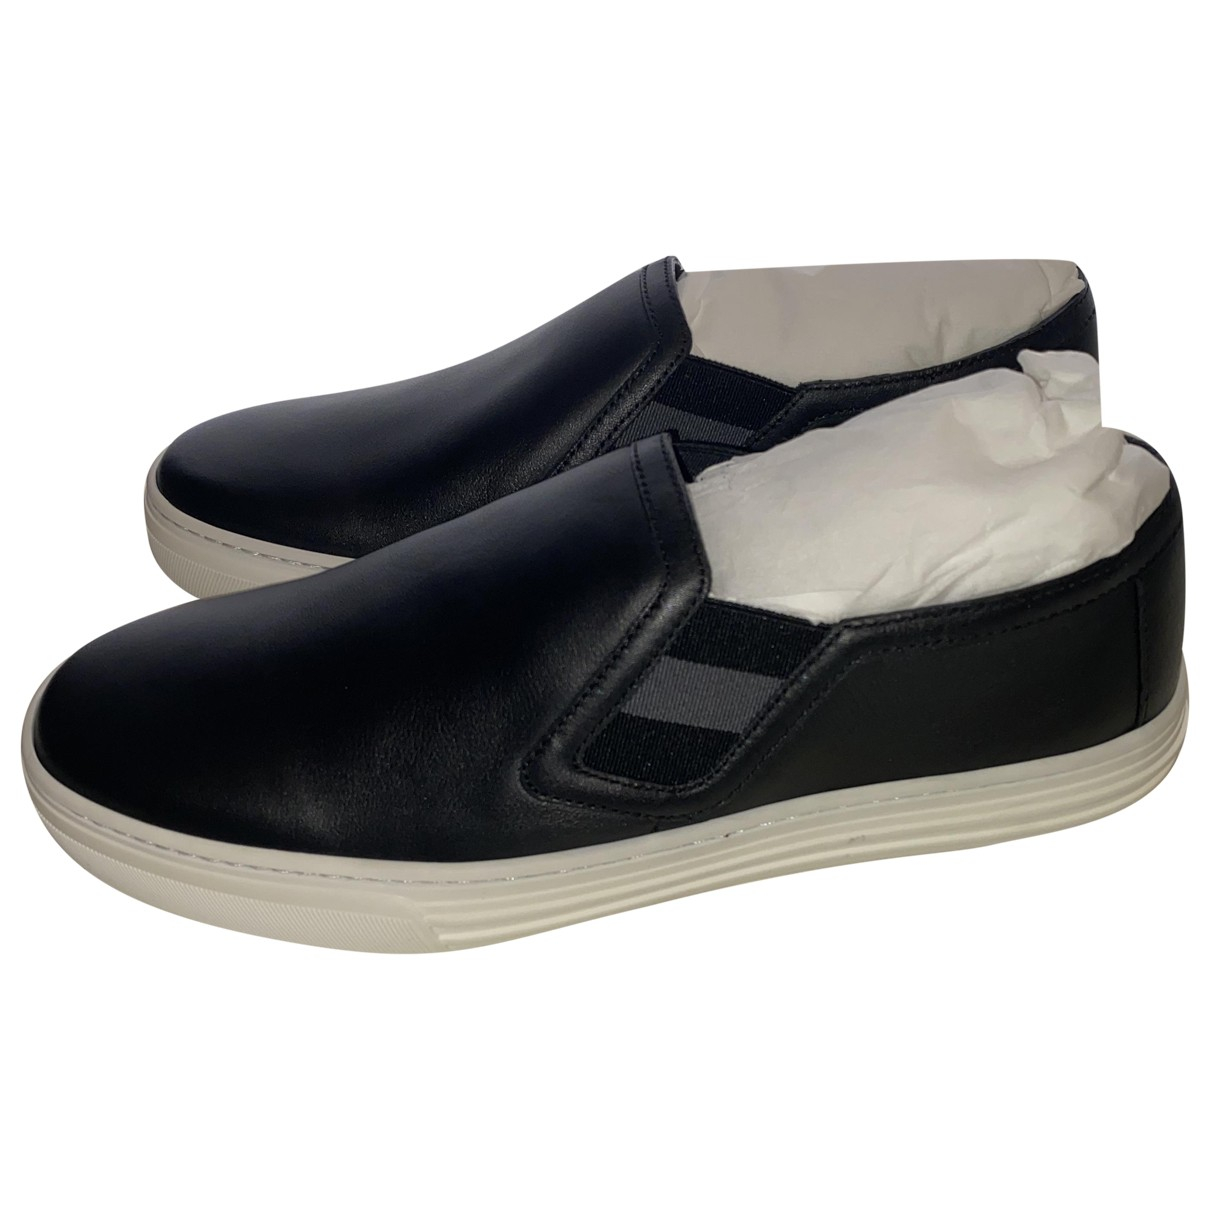 Gucci N Black Leather Trainers for Women 36 EU